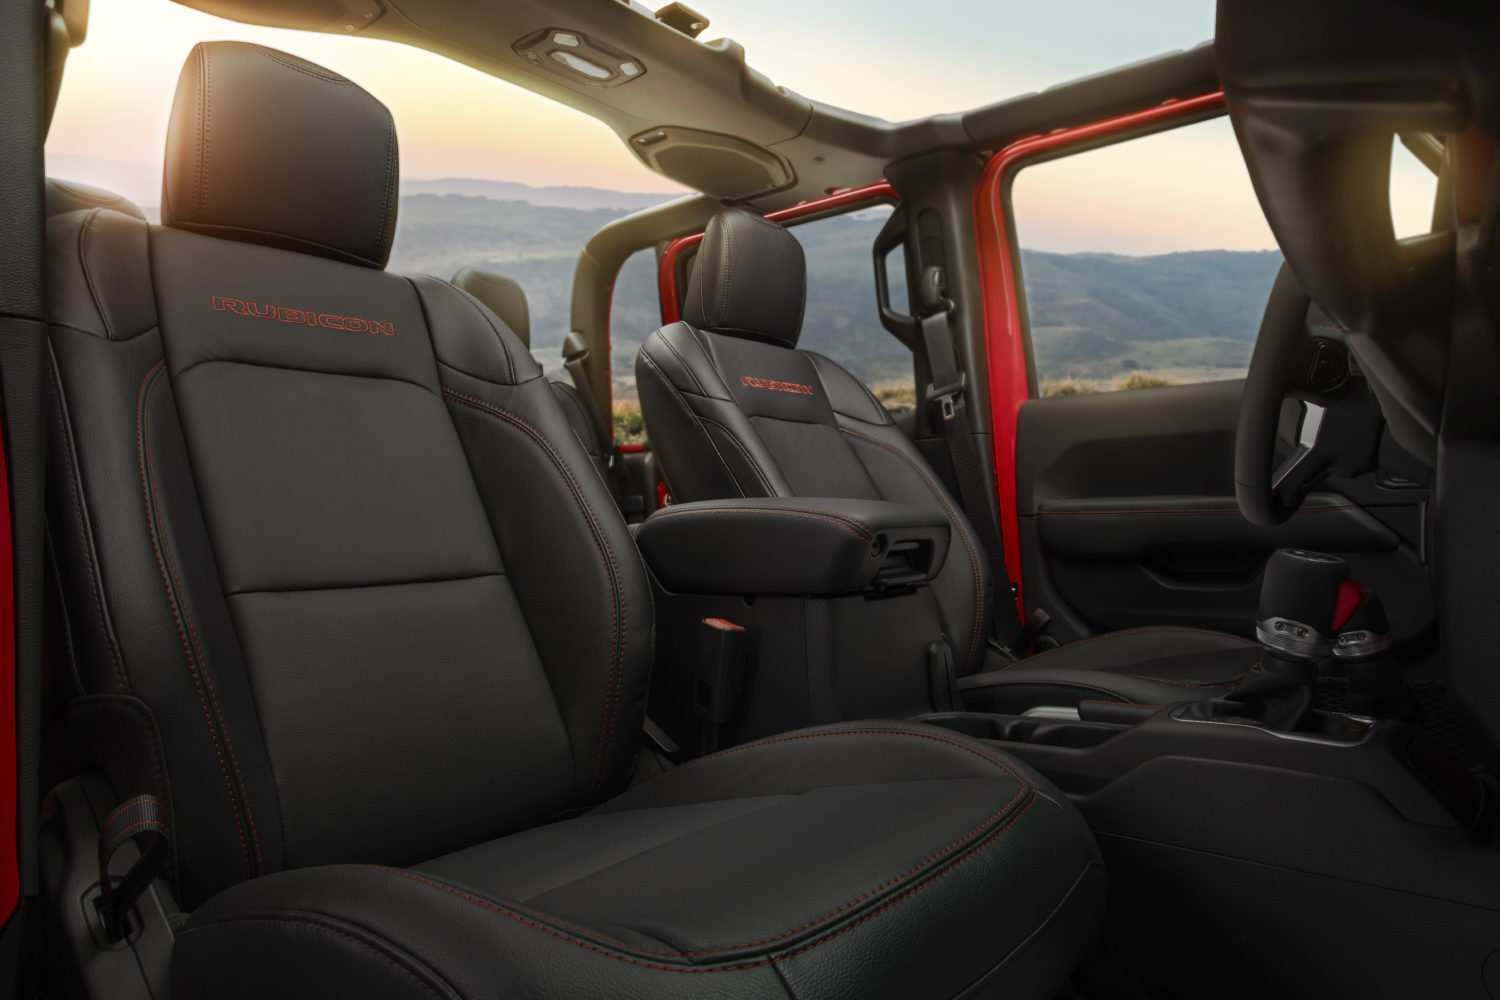 42 Great 2020 Jeep Gladiator Interior Images for 2020 Jeep Gladiator Interior